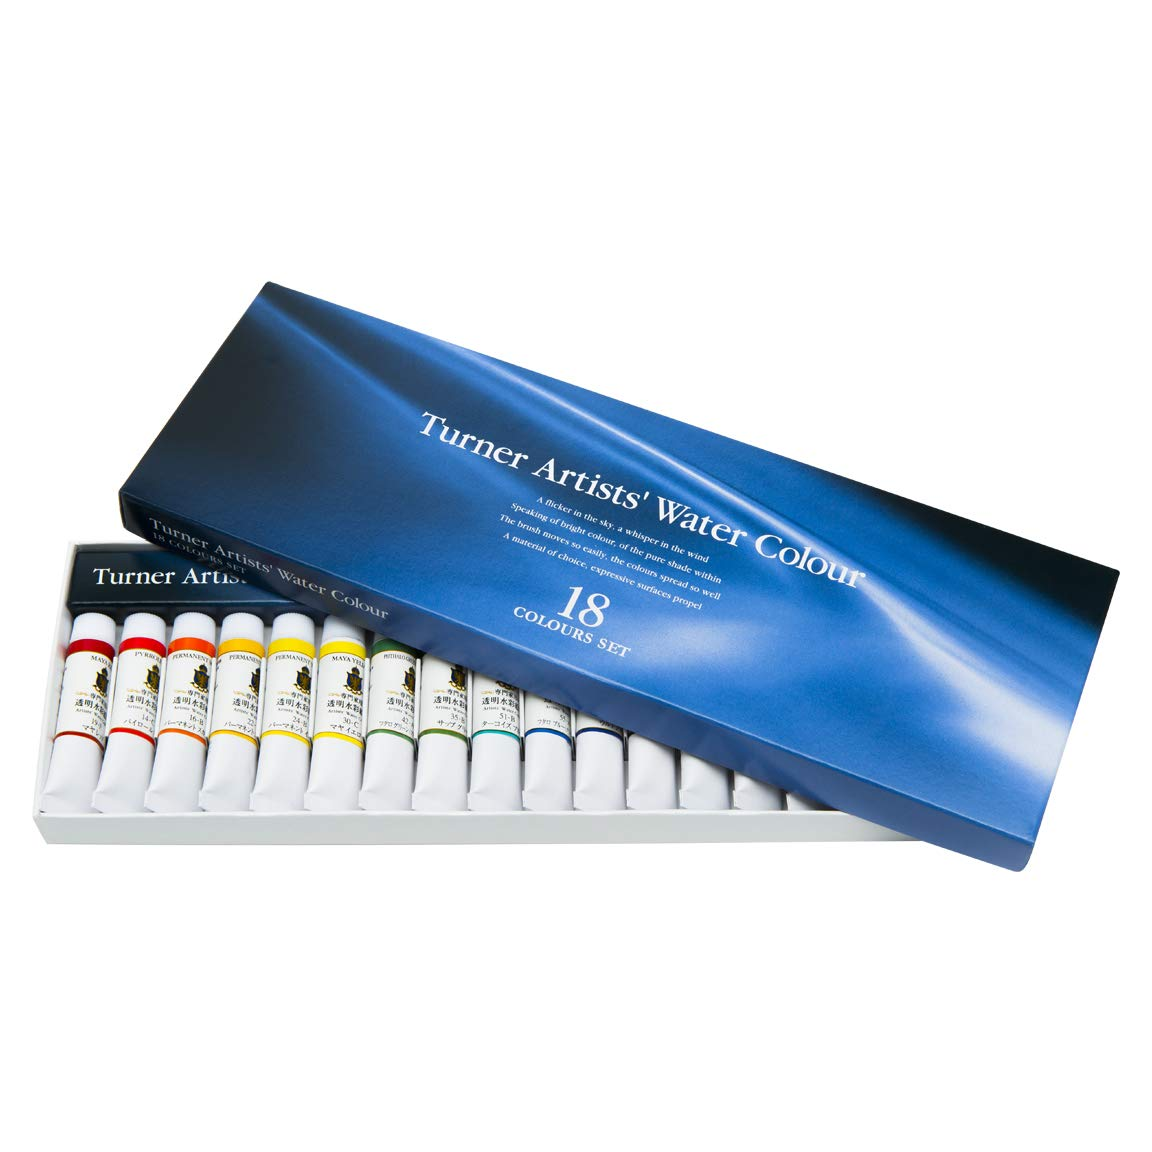 Turner Colour Works Paint Set Professional Artists' High Pigment Concentrated Watercolor Paint Set [Set of 18] 5ml Tubes - Assorted Colors by Turner Colour Works